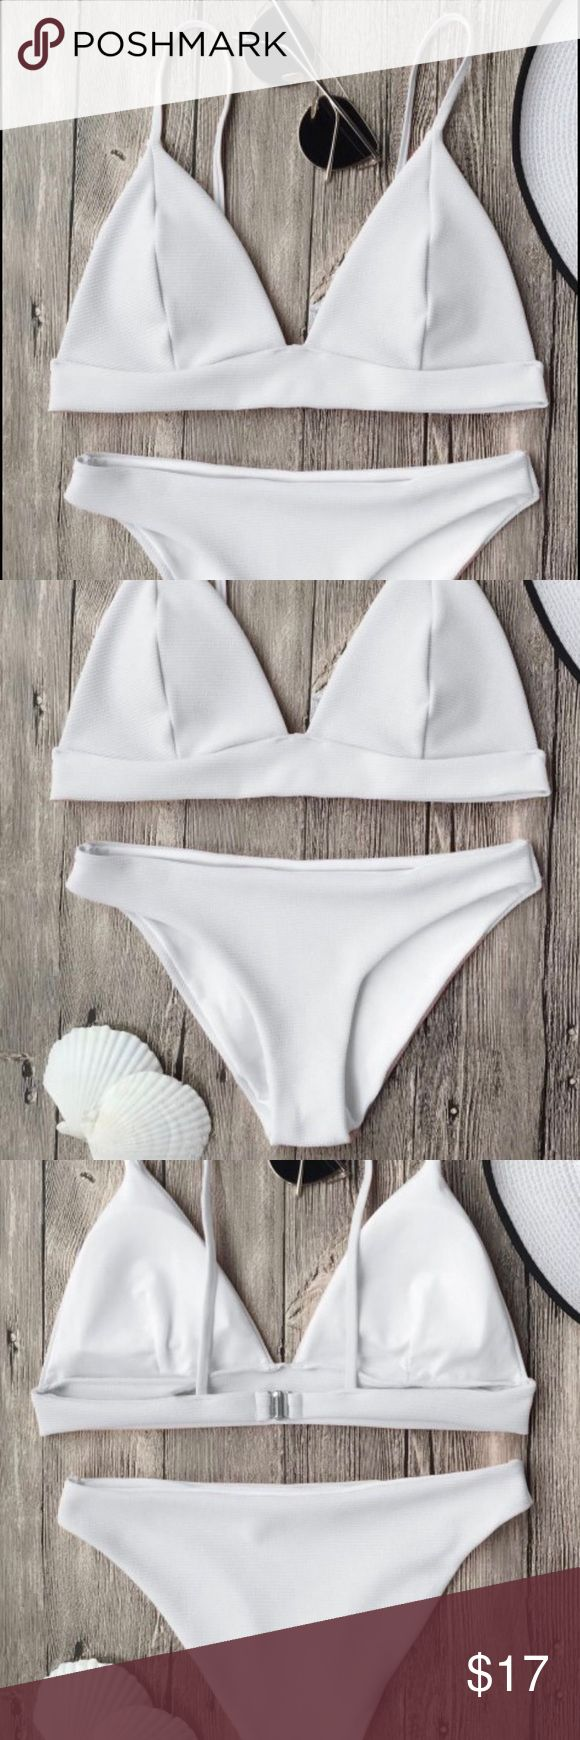 White triangle bikini Brand new, never worn, white bikini with lining and removable pads. Purchased this item on June 5, 2017, so it is BRAND NEW and has never been worn! It is a size medium- I am 5'3 and 112 and it fit just a little too loosely. Swim Bikinis